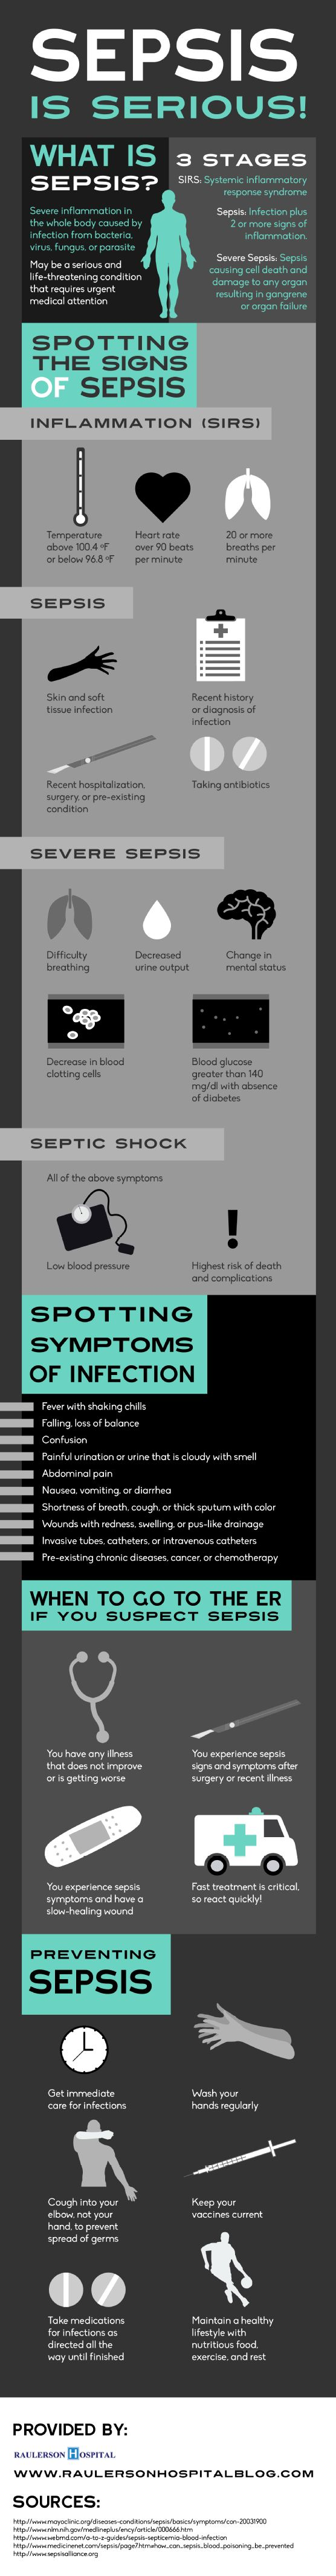 Sepsis-Is-Serious-Infographic-01